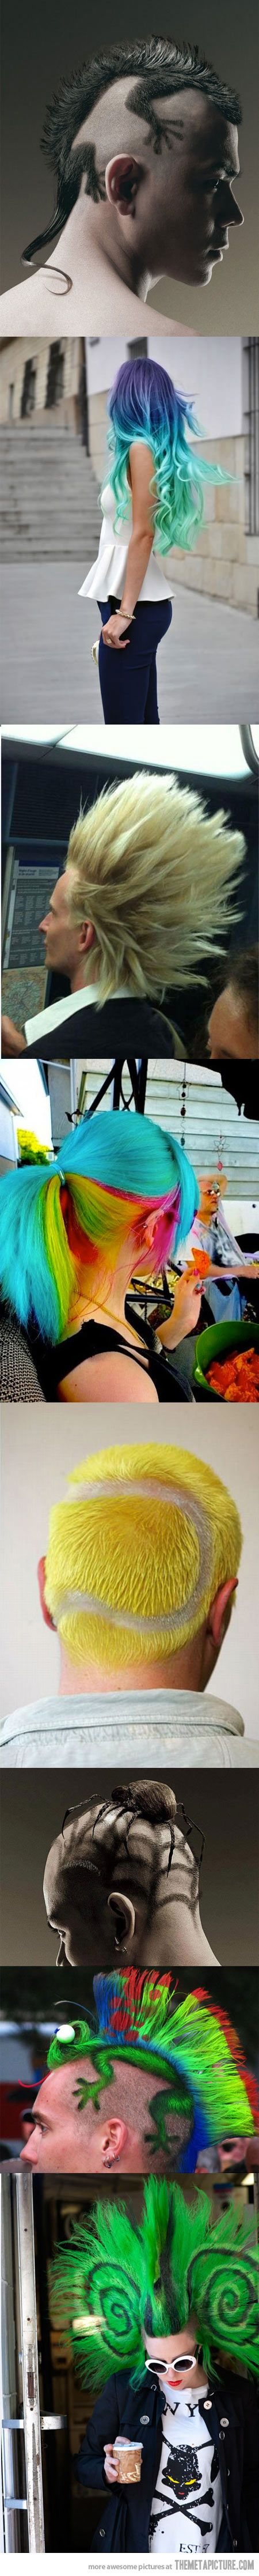 Unconventional Haircuts...love the rainbow one! The rest are a too crazy for me.